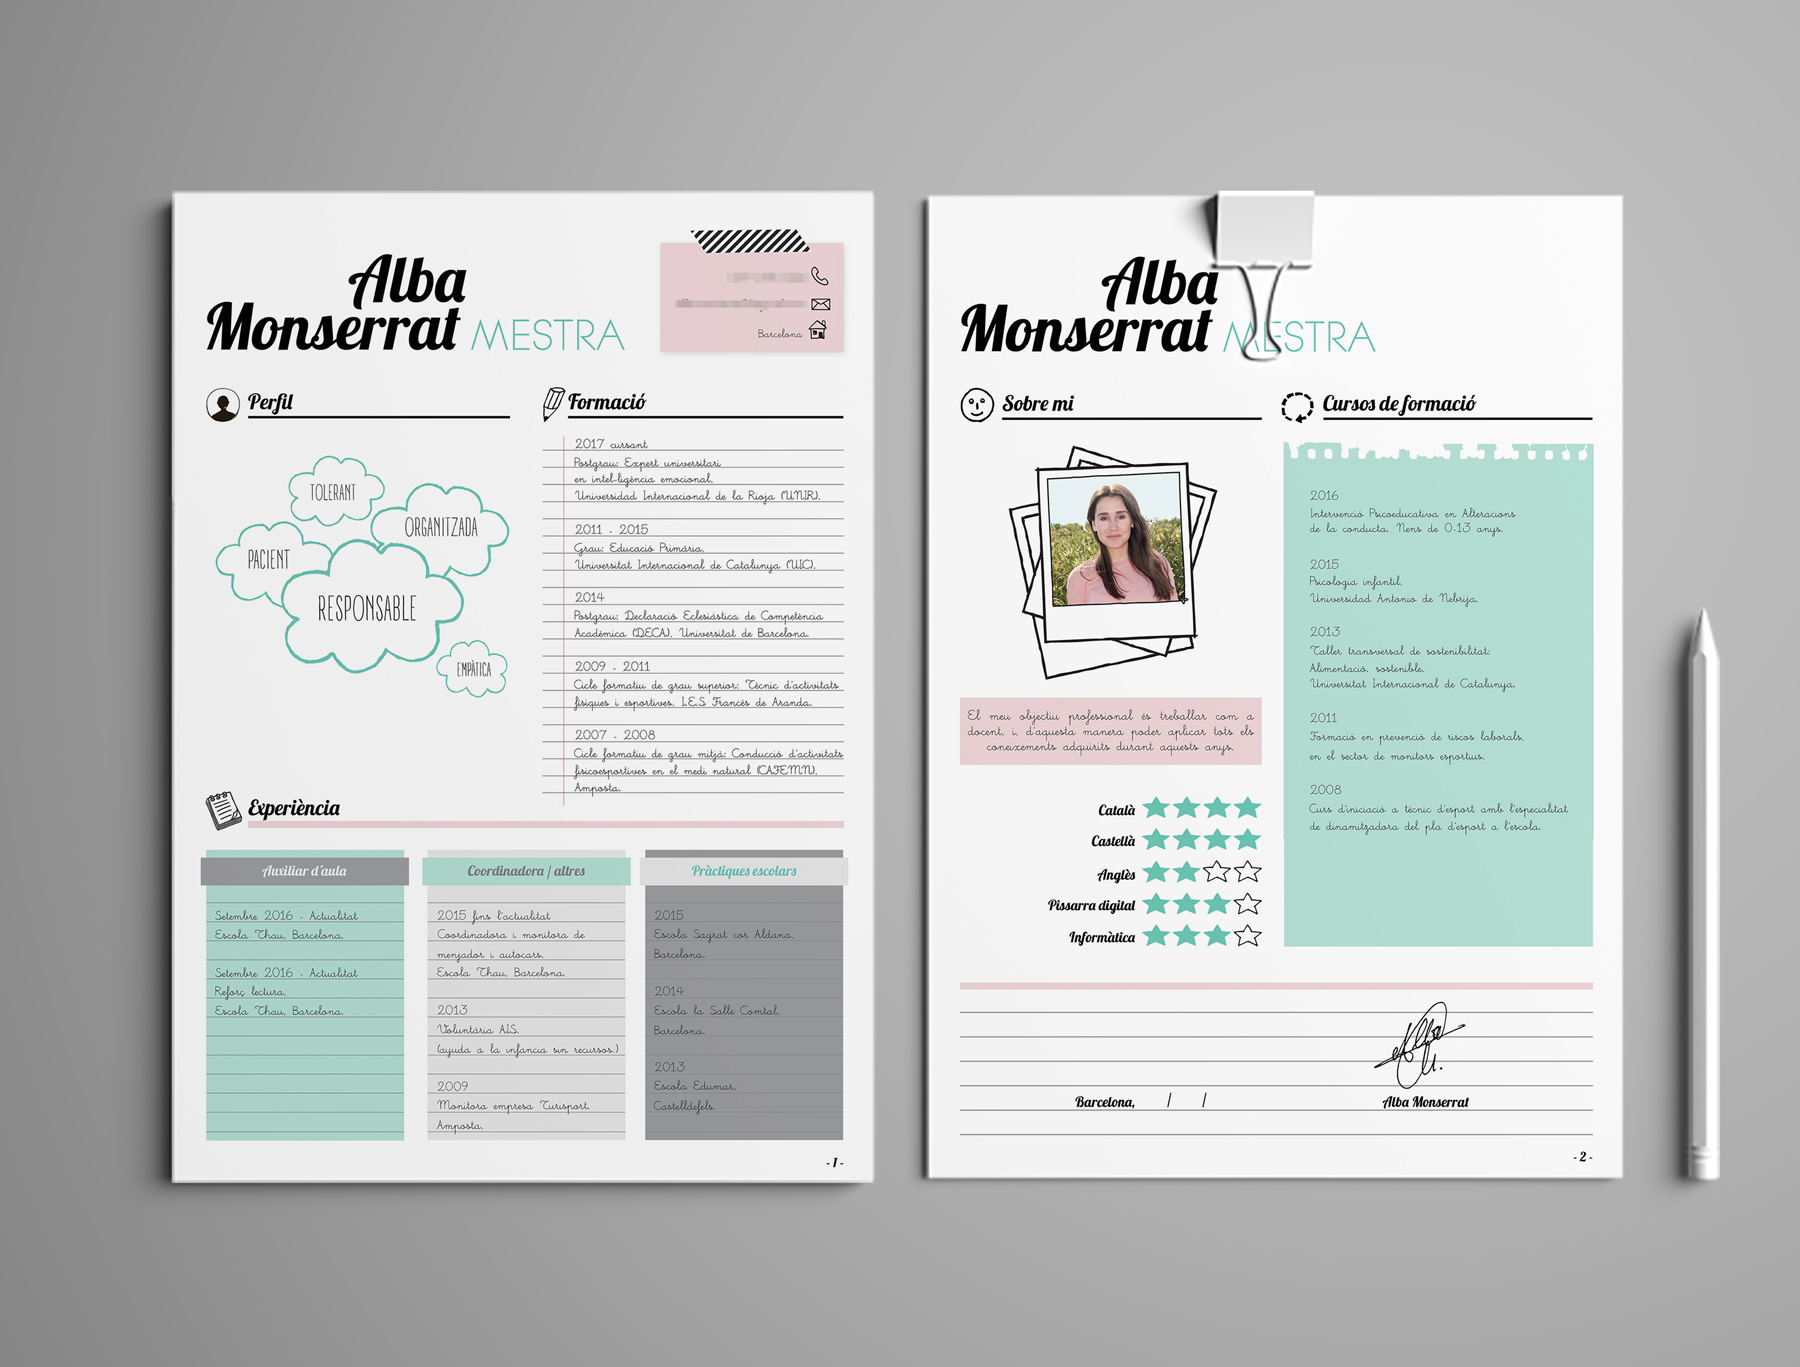 cv teacher studio lindalu illustrations that convey information and visualize ideas for business science and art